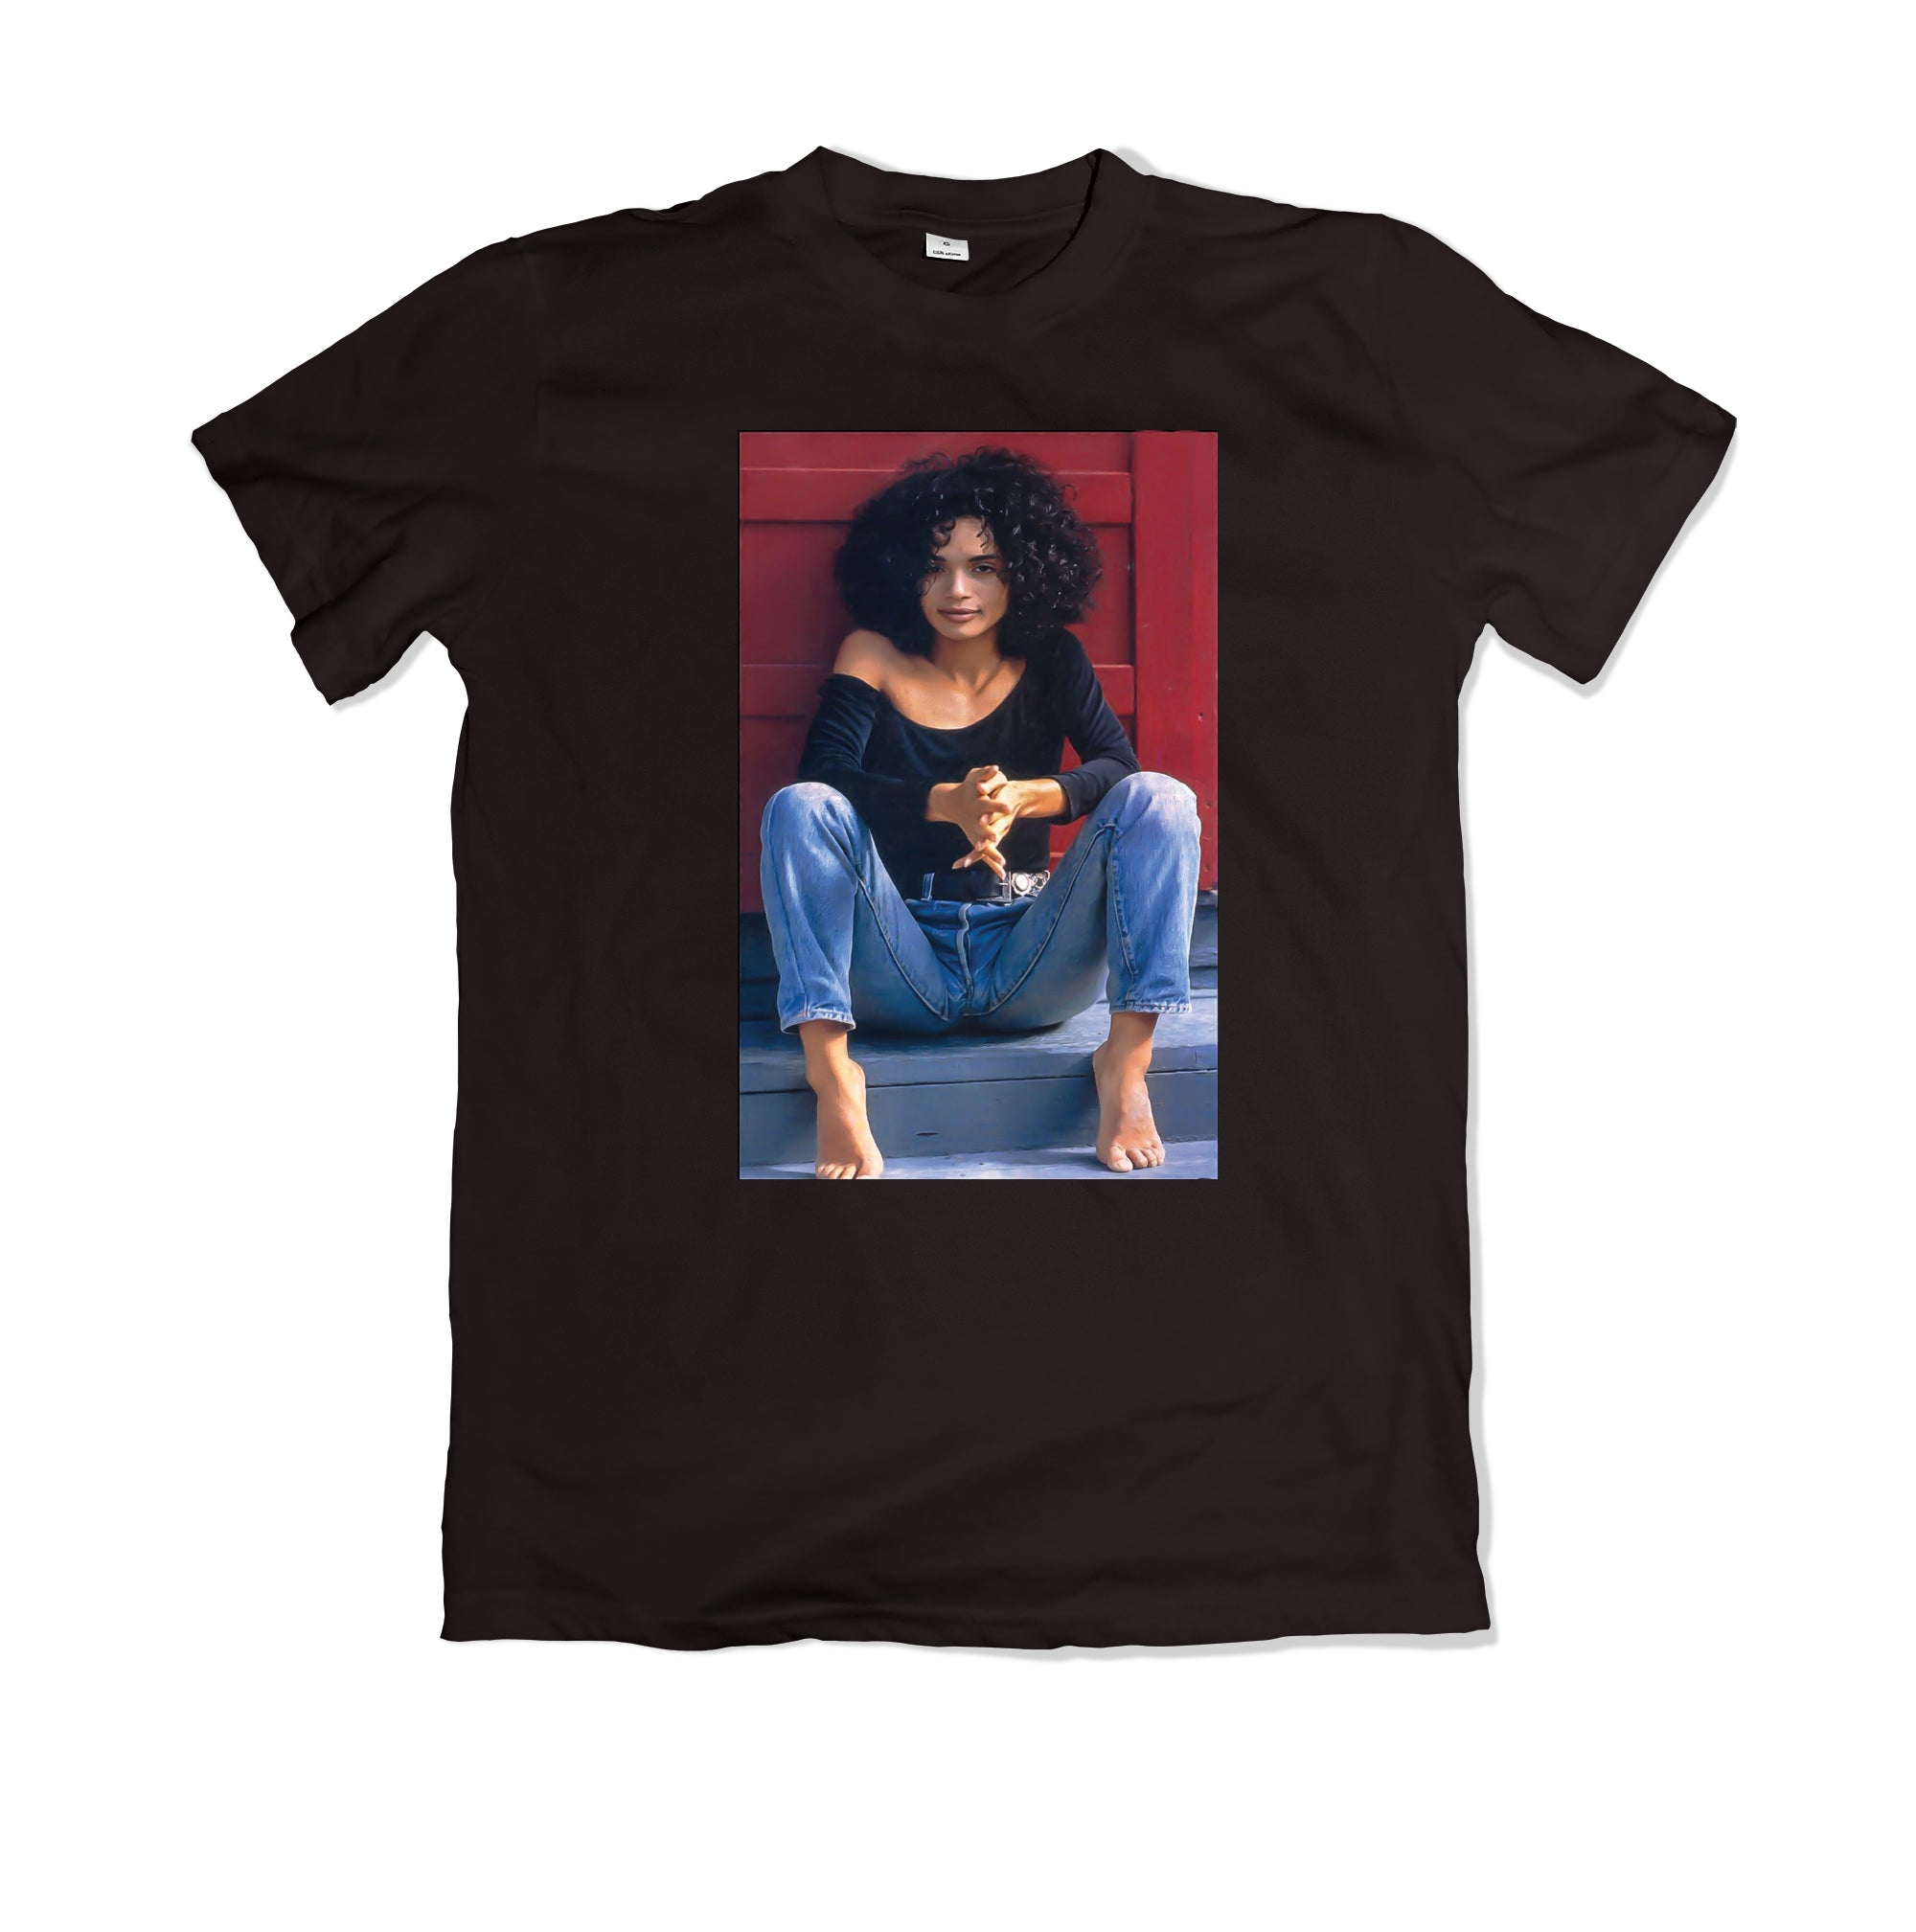 LISA BONET TEE - TOPS, TSS CUSTOM GRPHX, SNEAKER STUDIO, GOLDEN GILT, DESIGN BY TSS